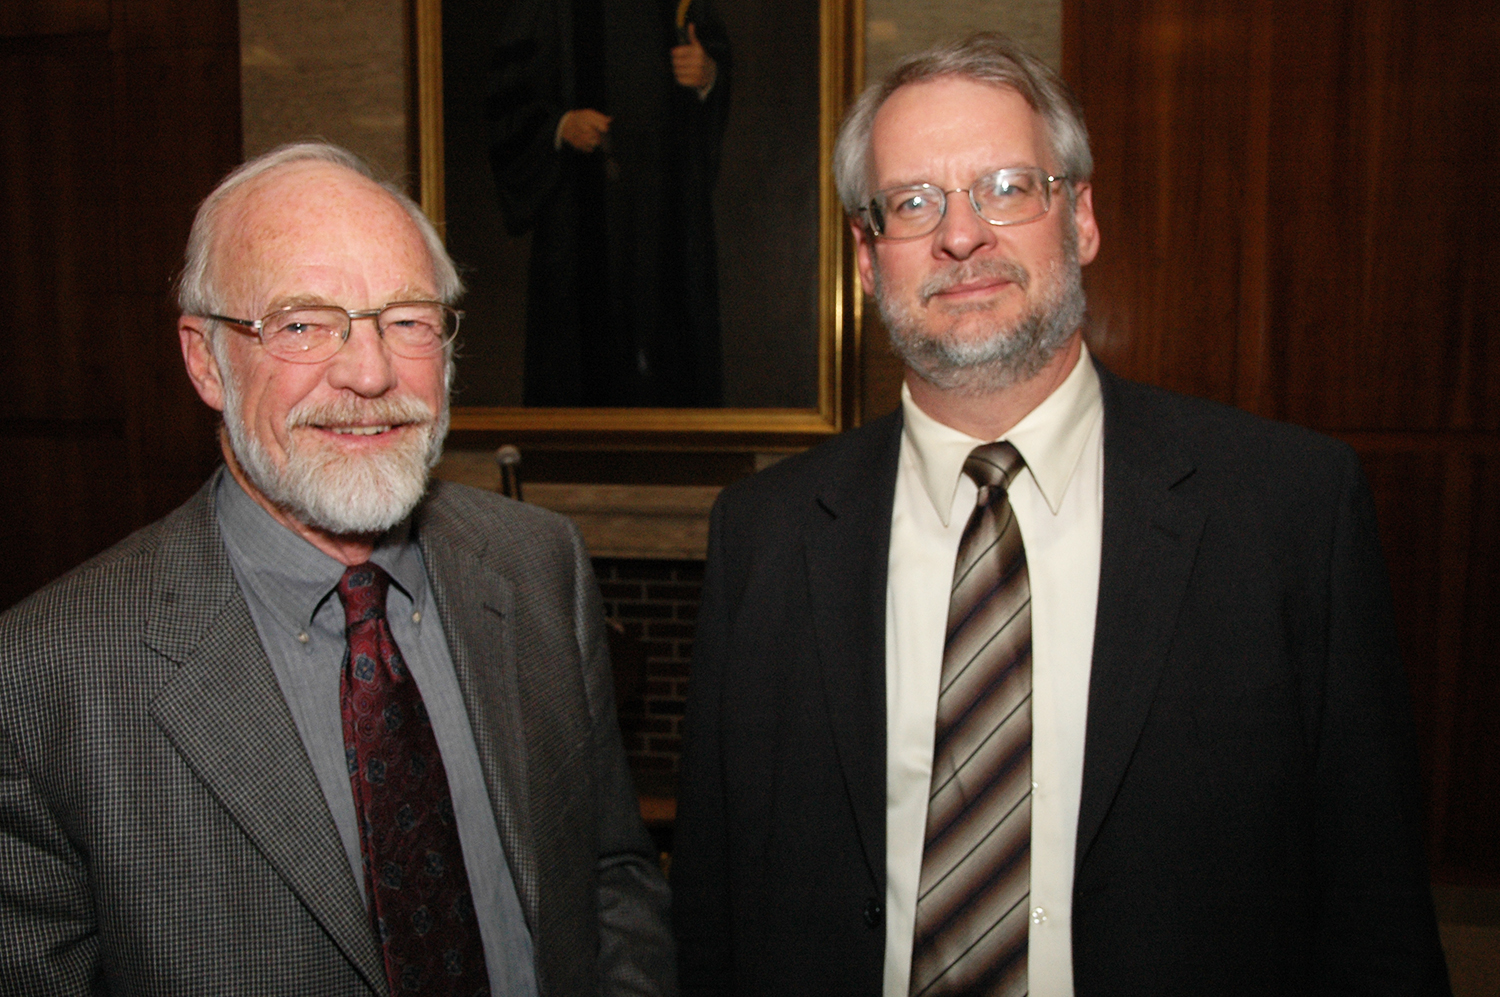 Rev. Dr. Peterson and Rev. Dr. Irvin at NYTS Alumni/ae Days in 2006